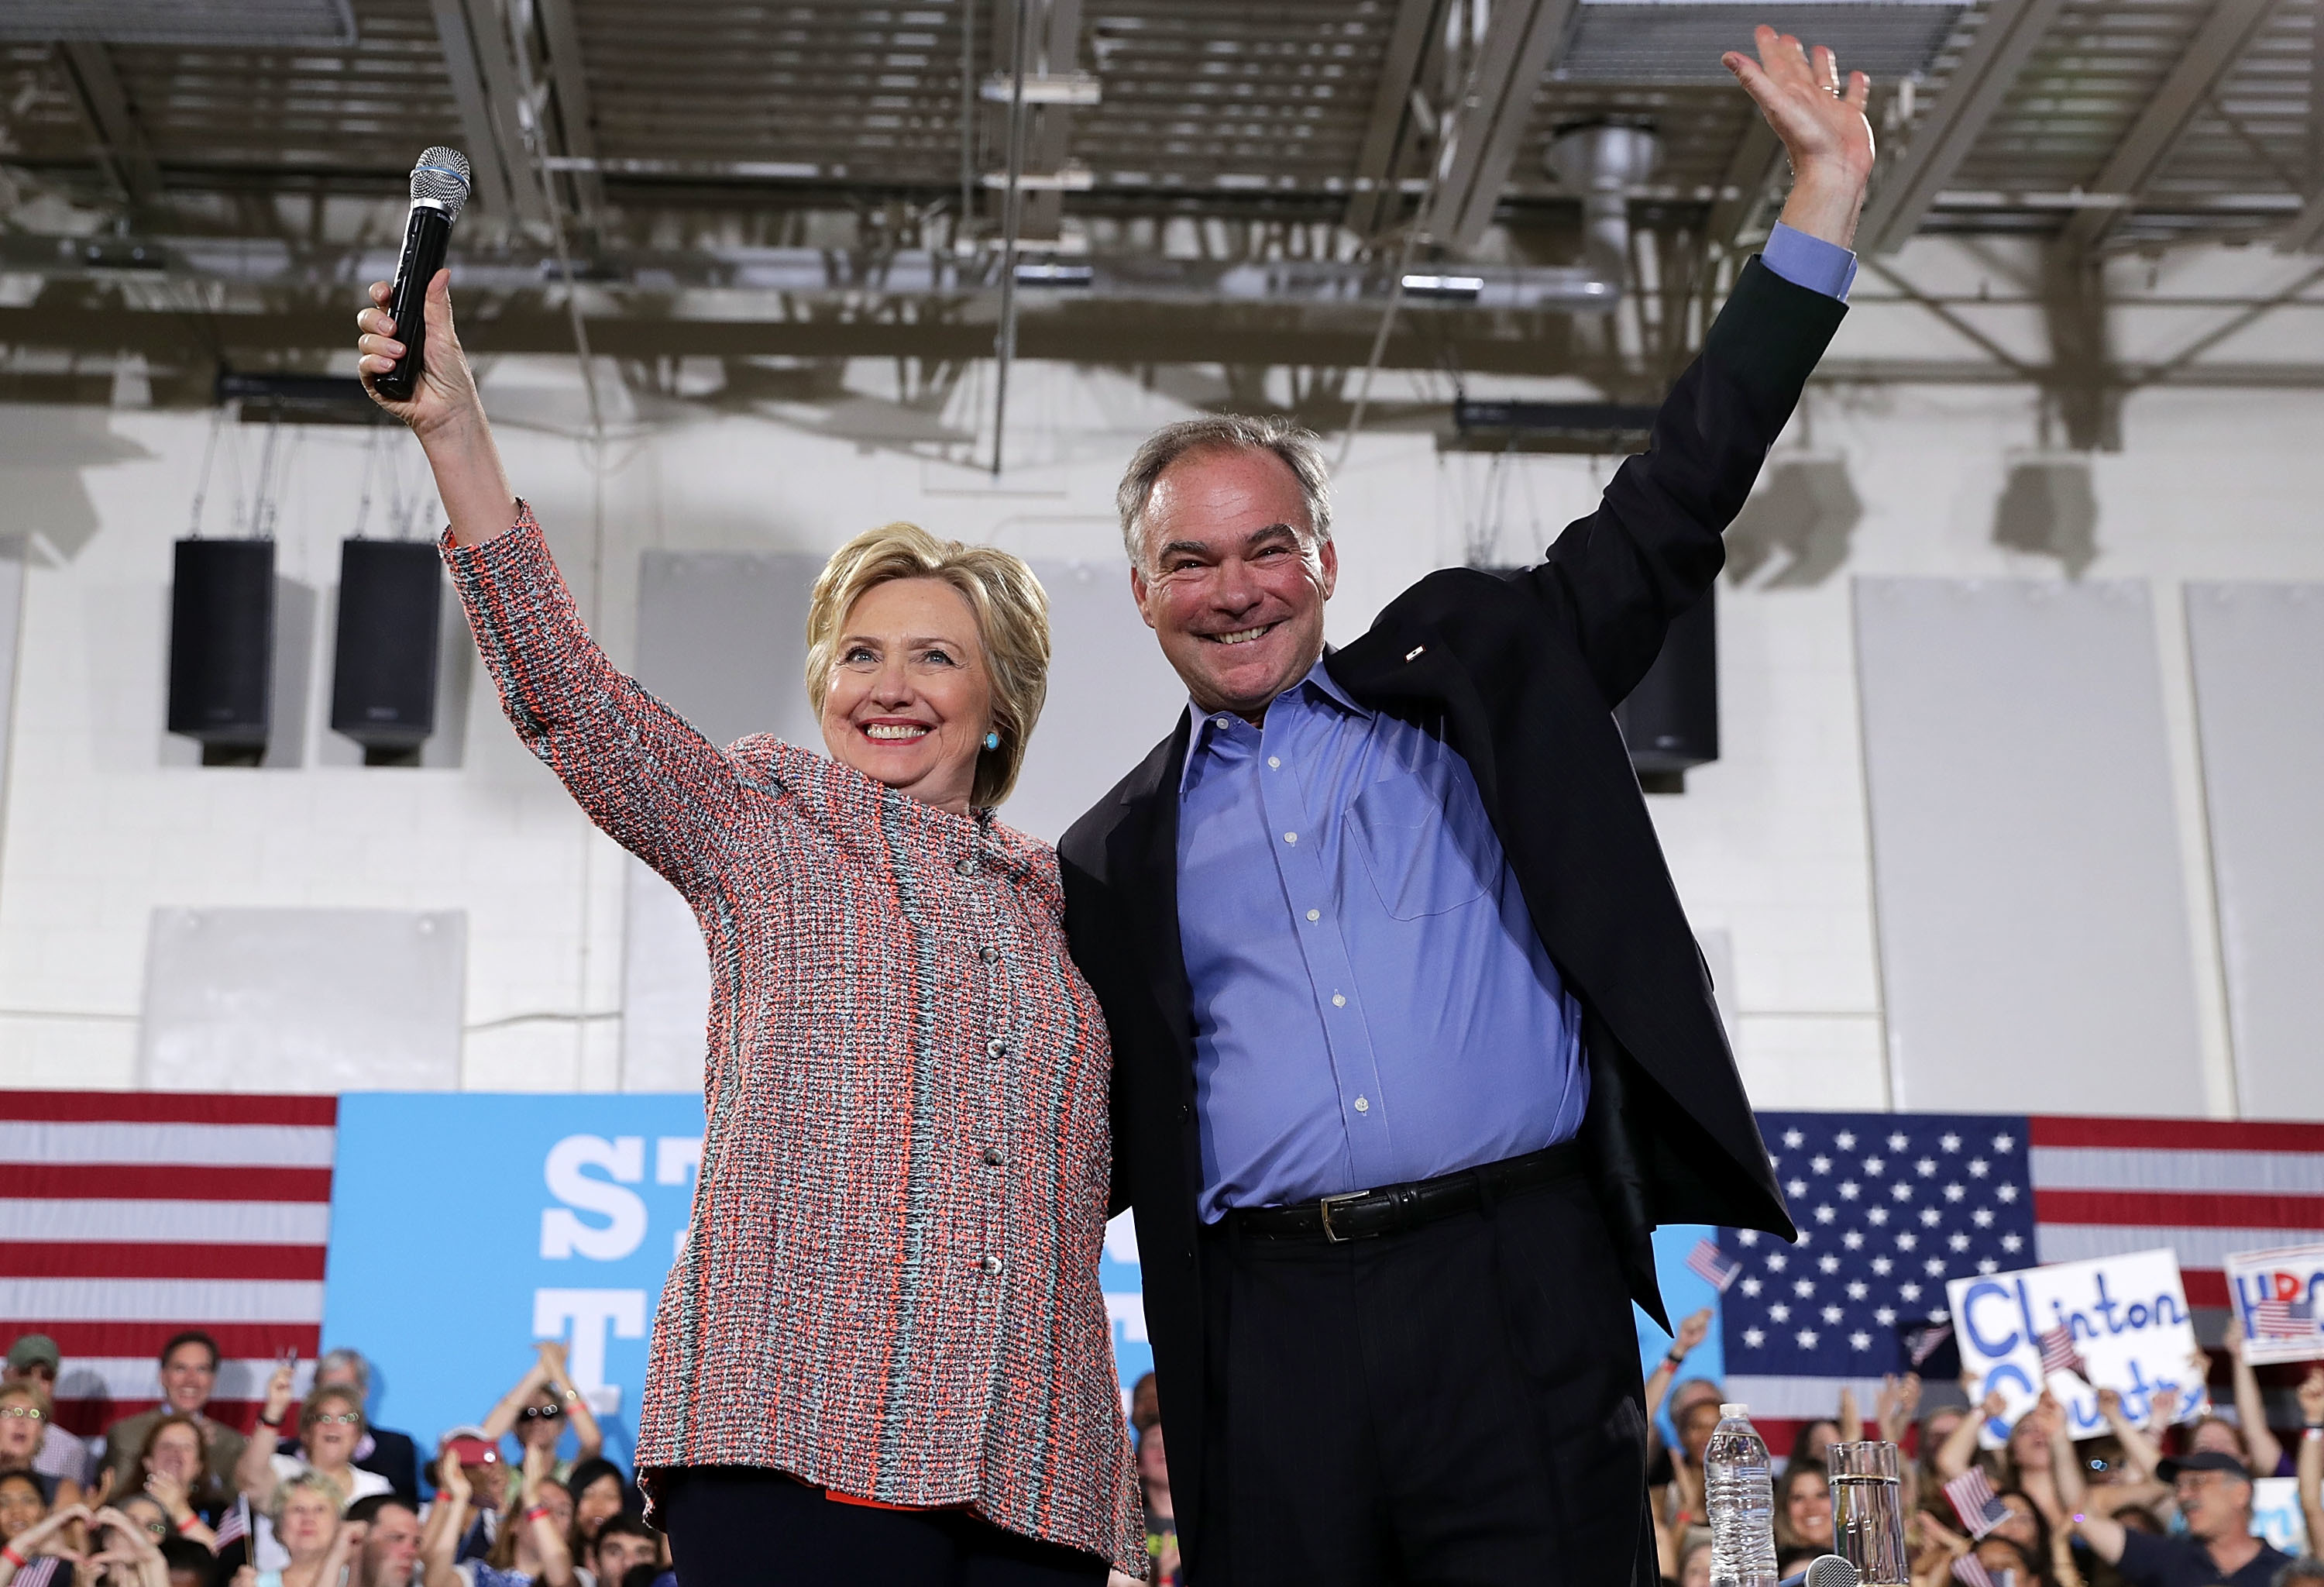 Democratic presidential candidate Hillary Clinton and Sen. Tim Kaine of Virginia greet the crowd during a campaign event on July 14 in Annandale, Va. (Alex Wong/Getty Images)